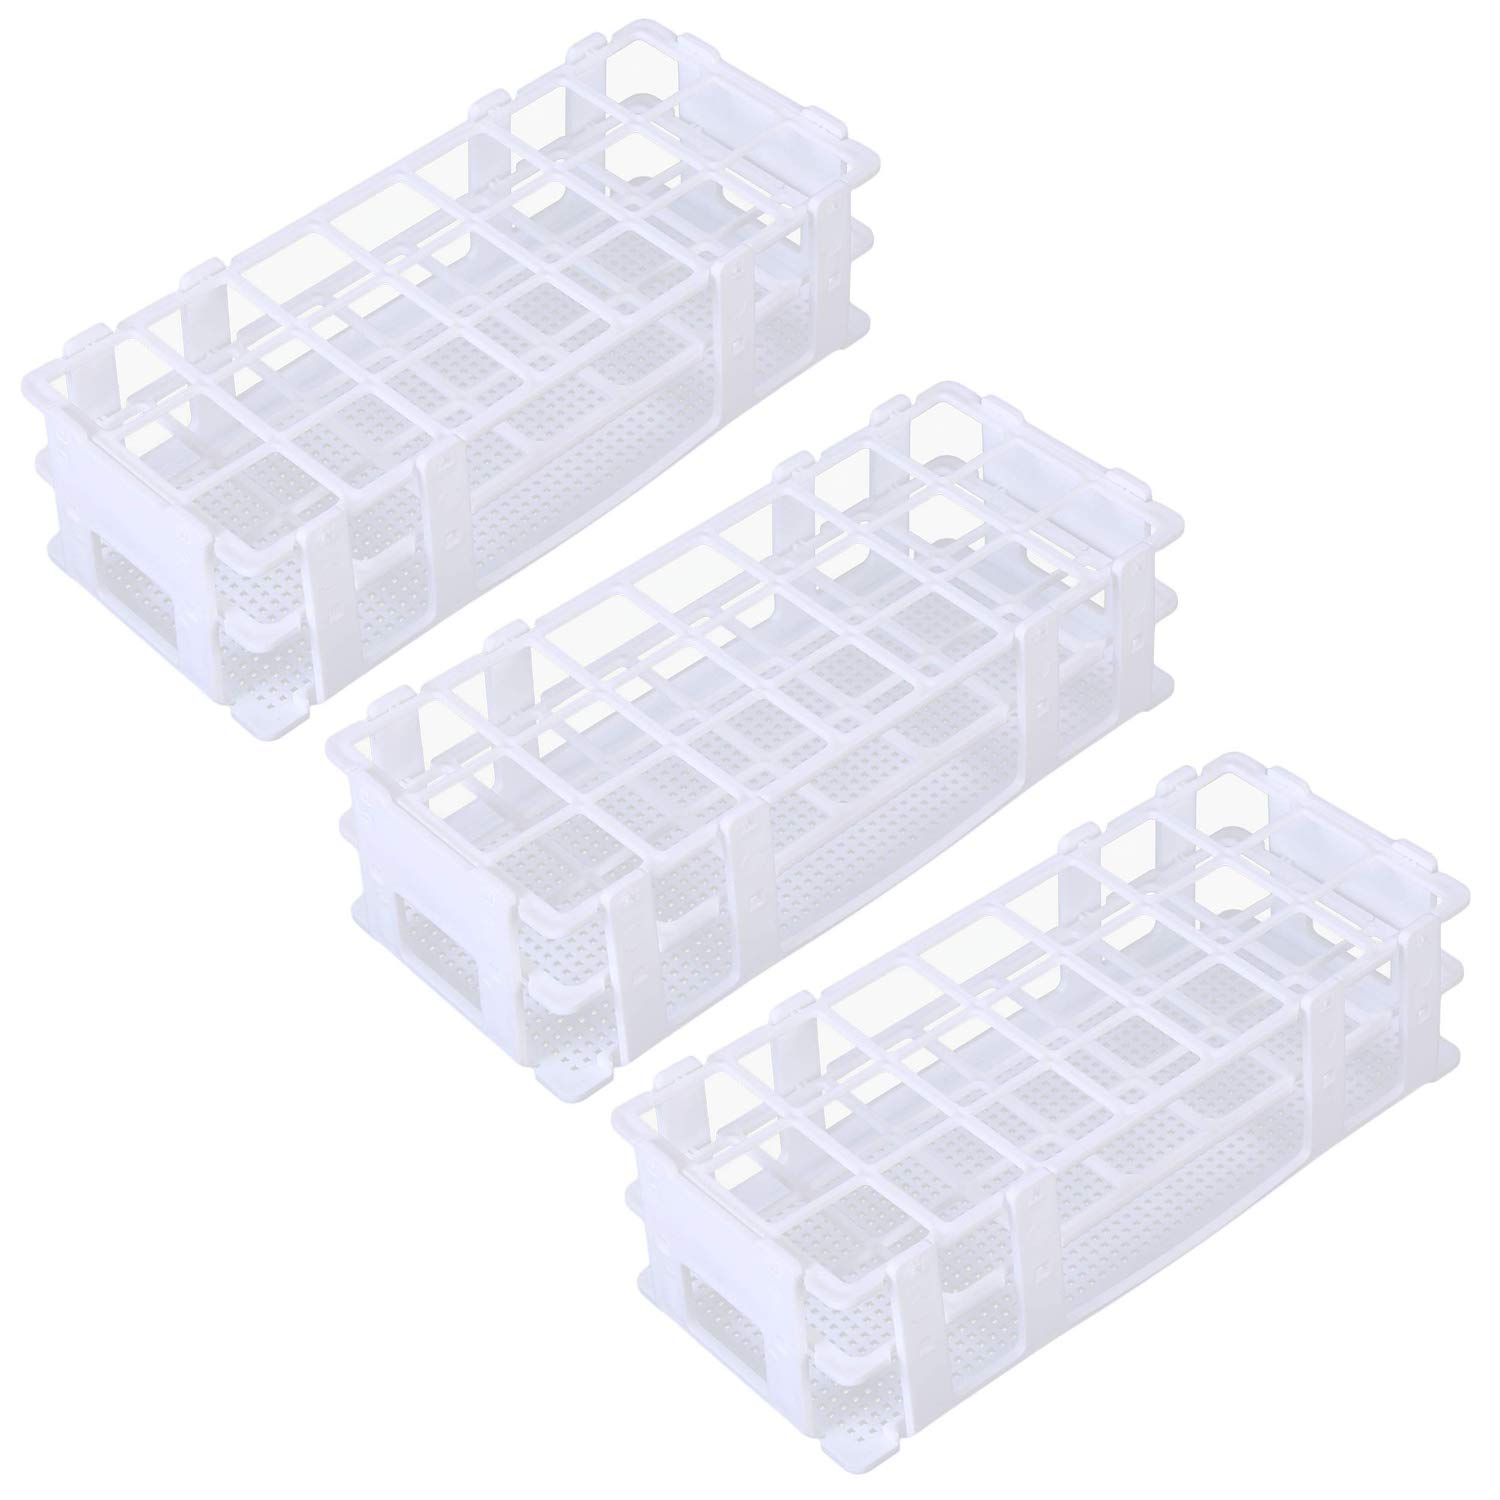 Pocomoco 3 Packs Plastic Test Tube Rack, 21 Holes Lab Test Tube Rack Holder for 30mm Test Tubes, White, Detachable (21 Holes) by Pocomoco